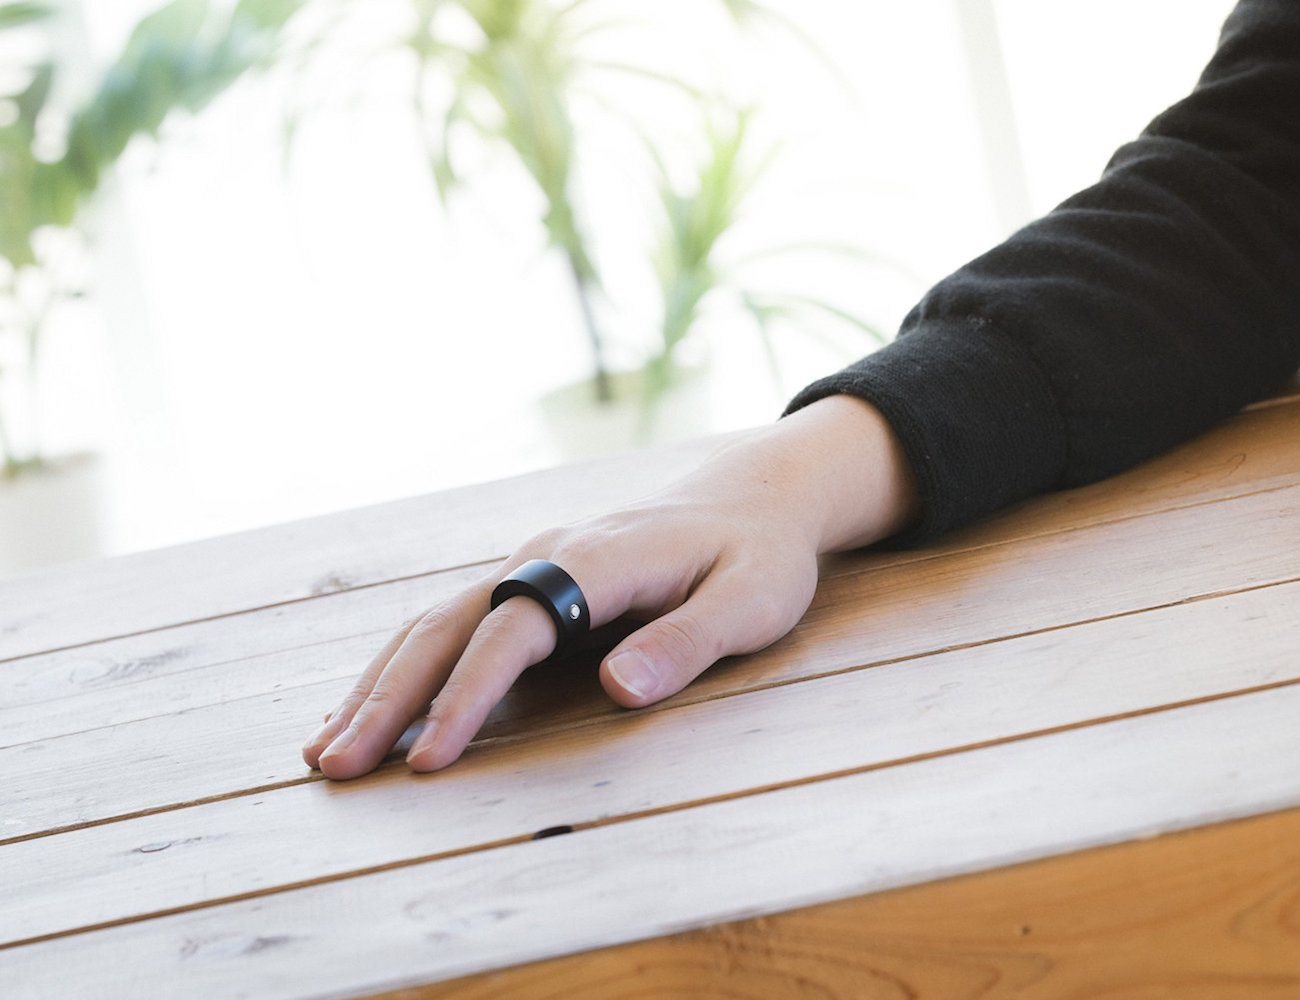 Ring ZERO S – Wearable Tech With Gesture Control